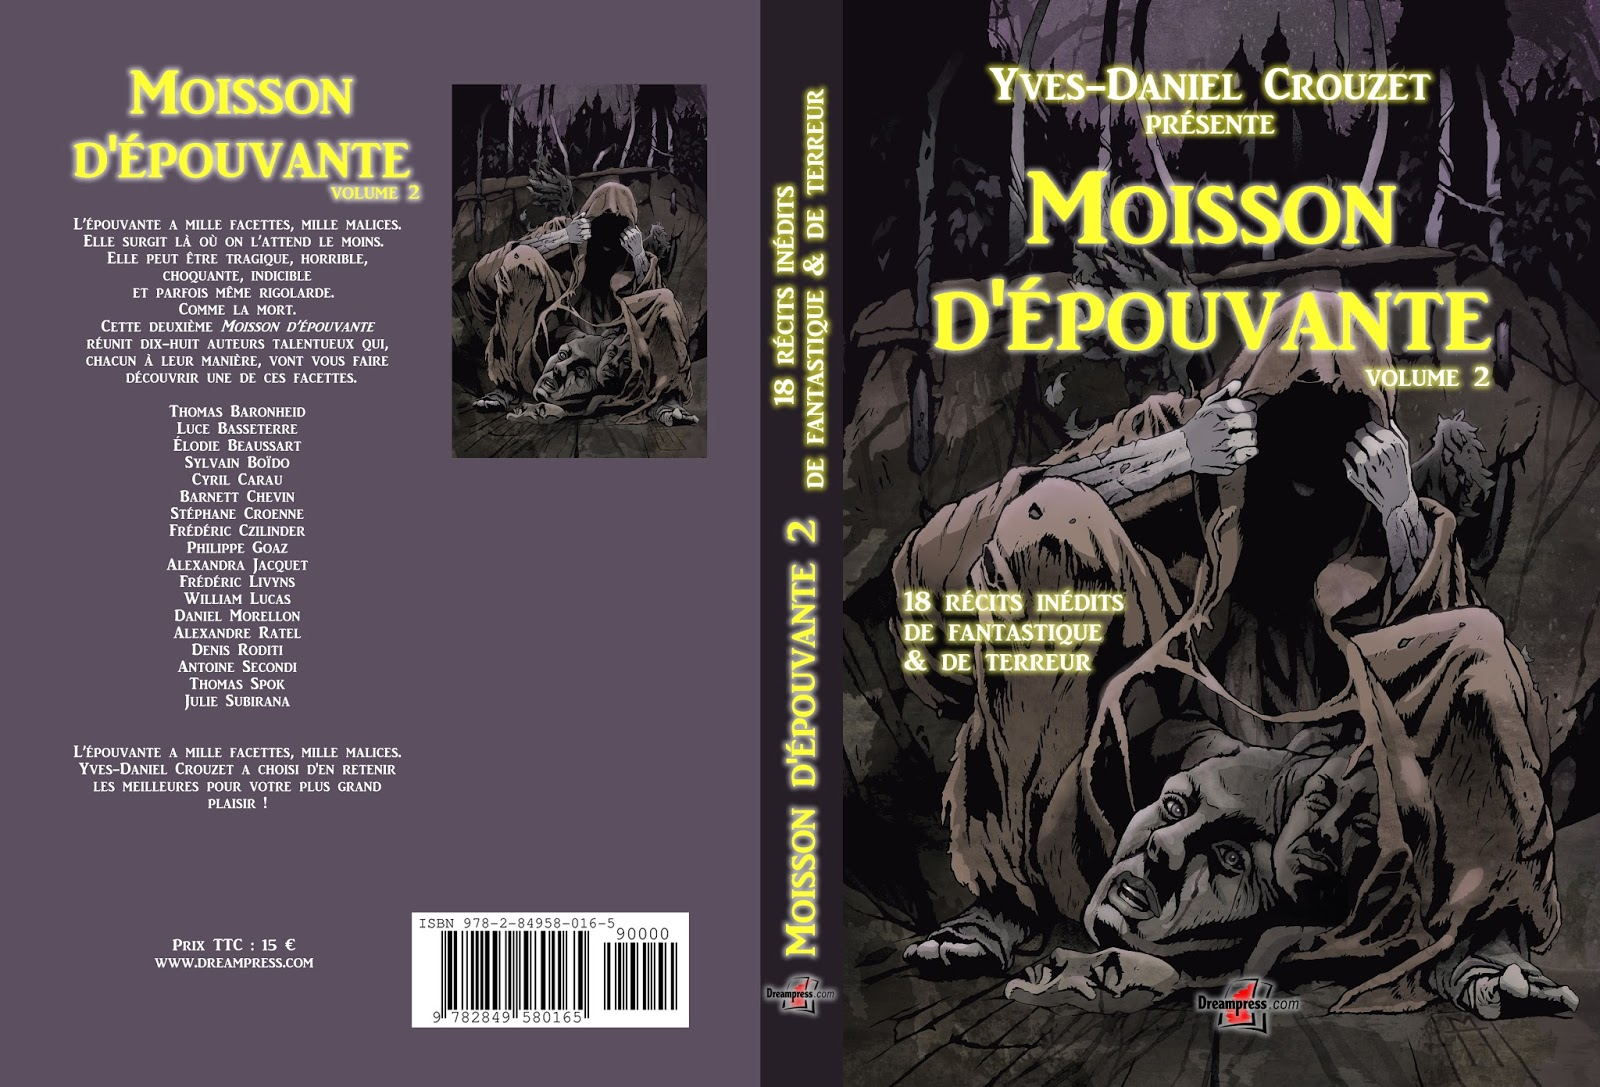 Parution de Moisson d'épouvante volume 2